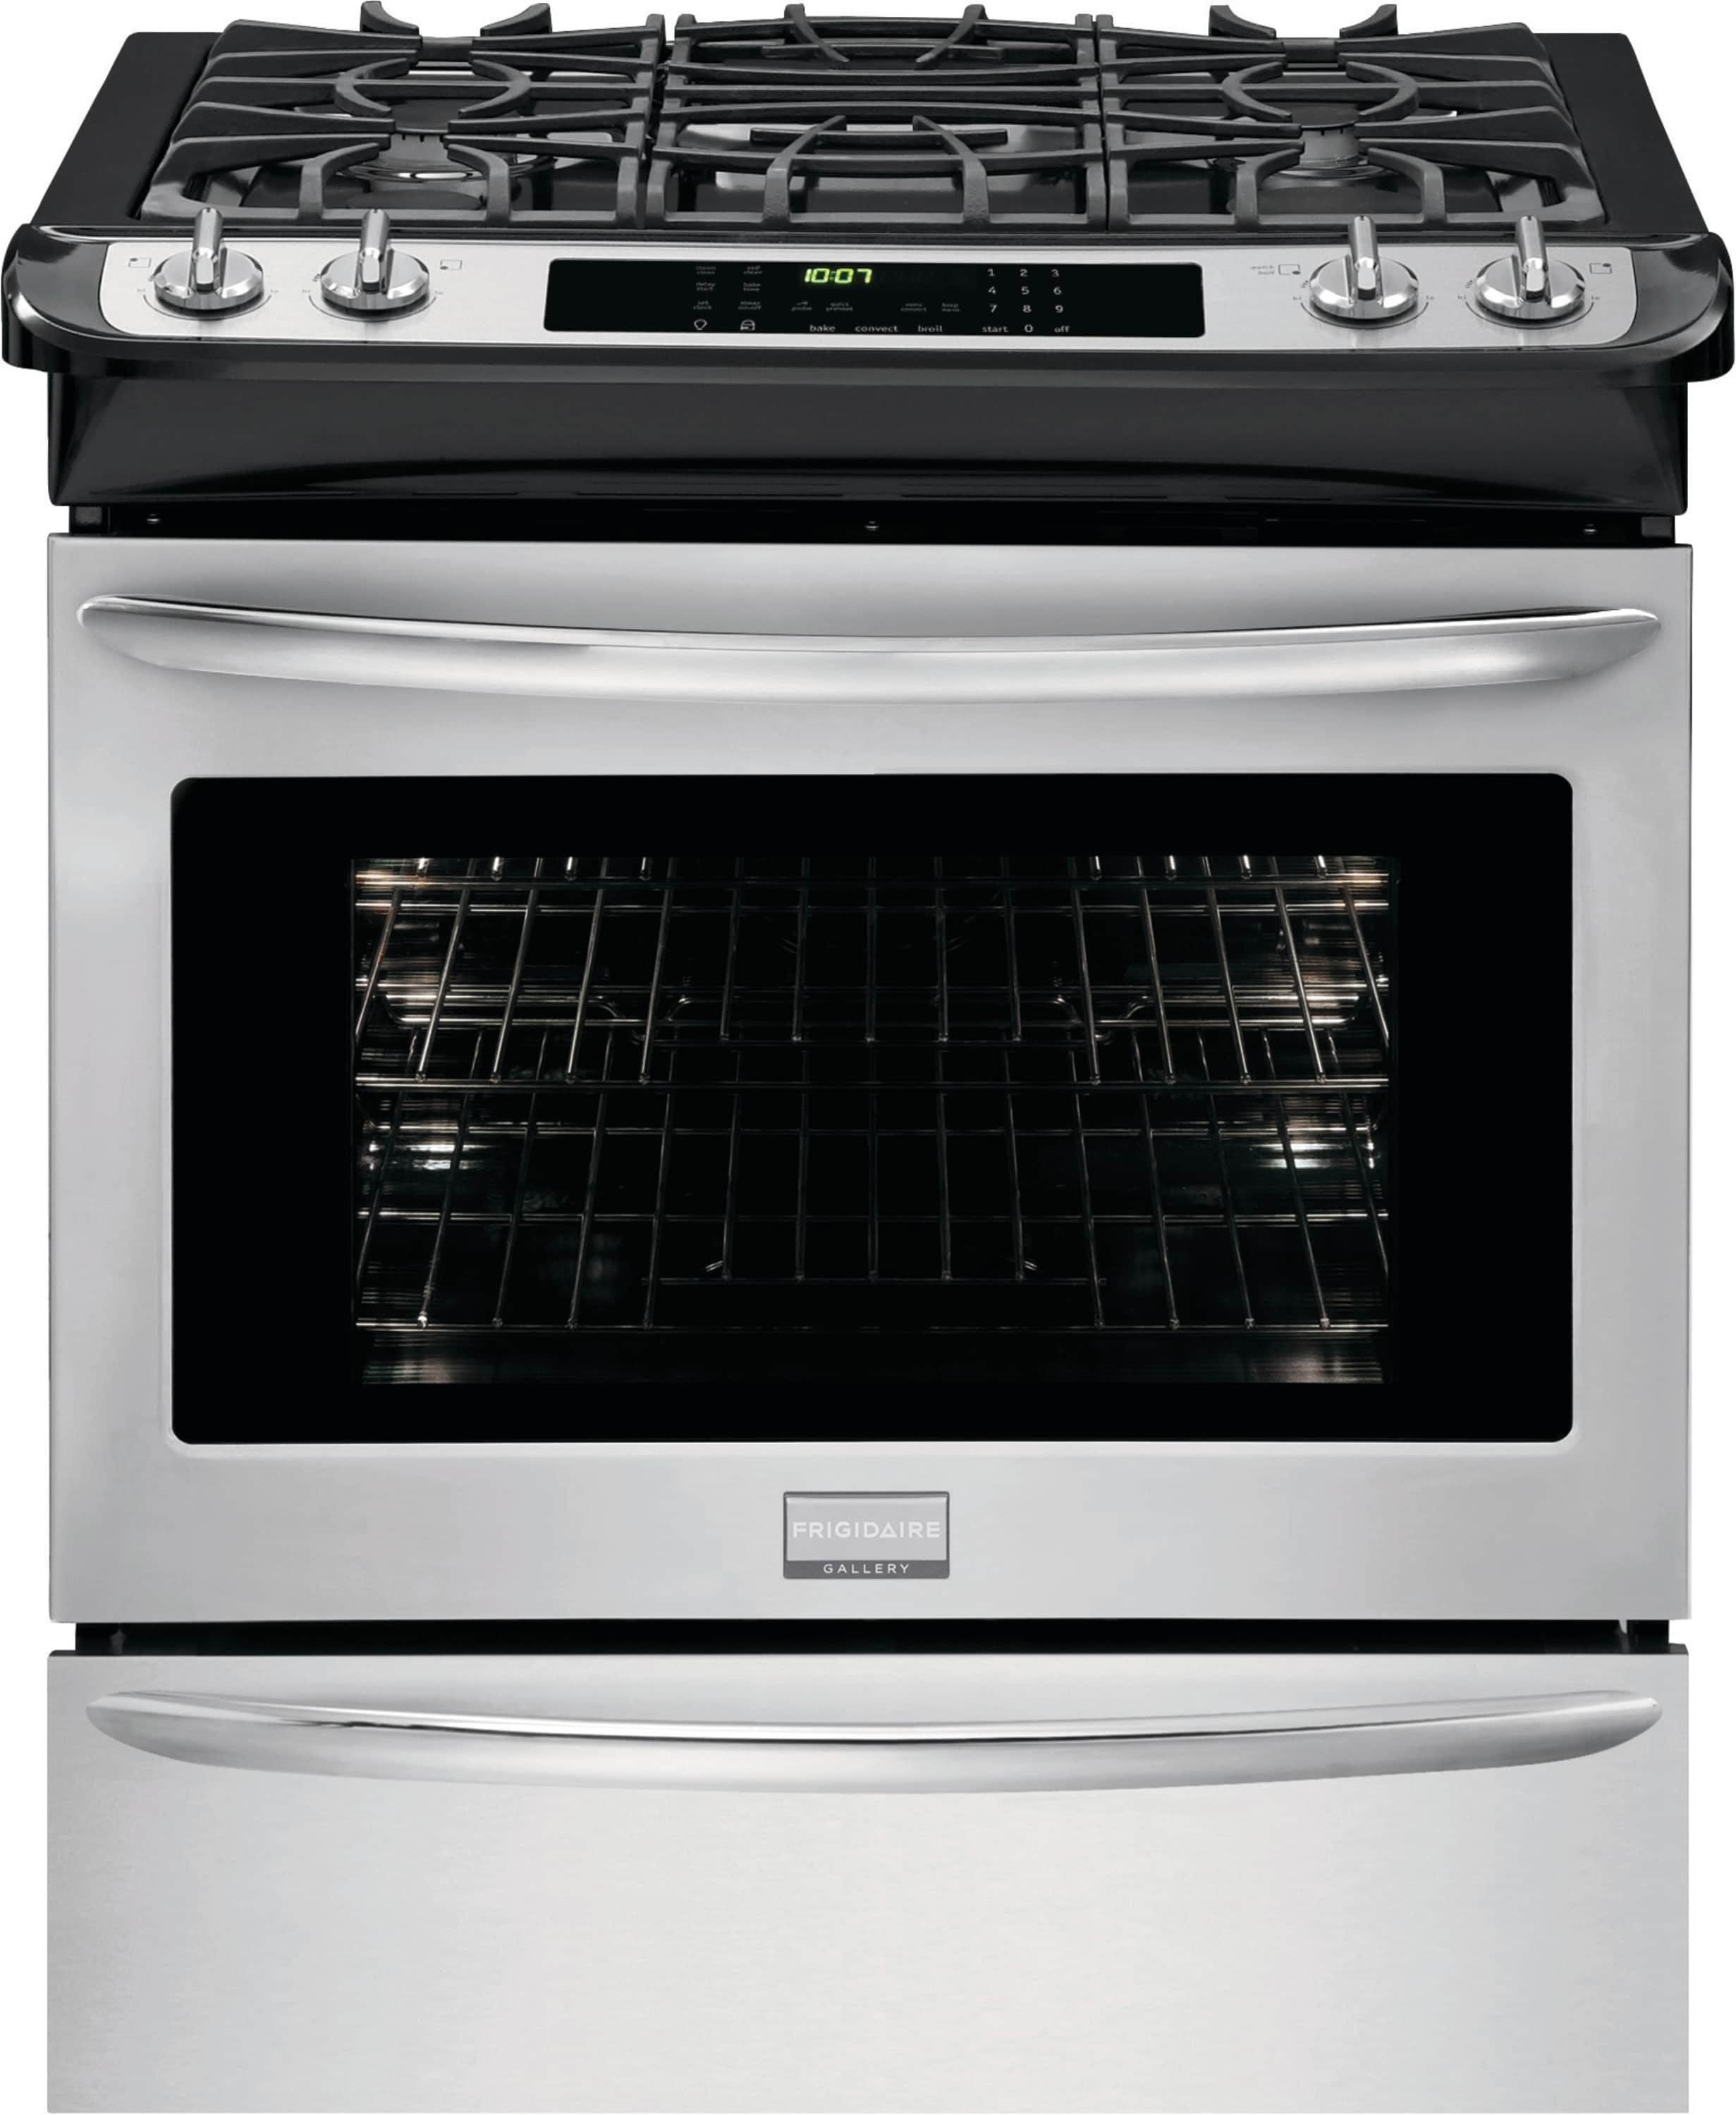 "Frigidaire 30"" Slide-In Dual-Fuel Range"